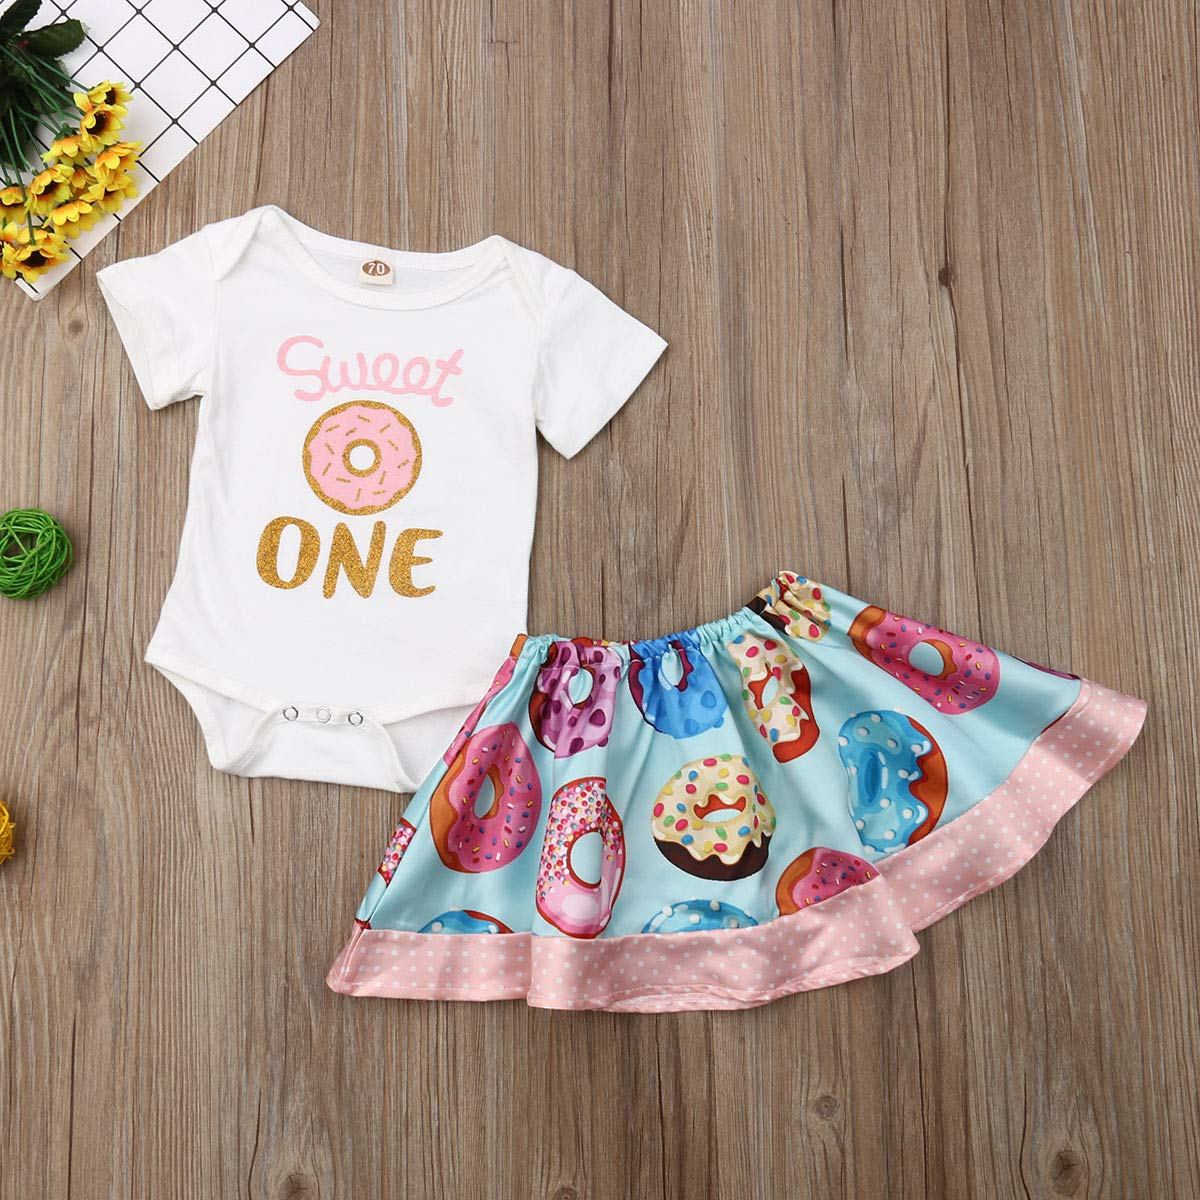 2pcs Baby Girl Clothes Newborn Romper Bodysuit Doughnuts Skirts Outfits Set